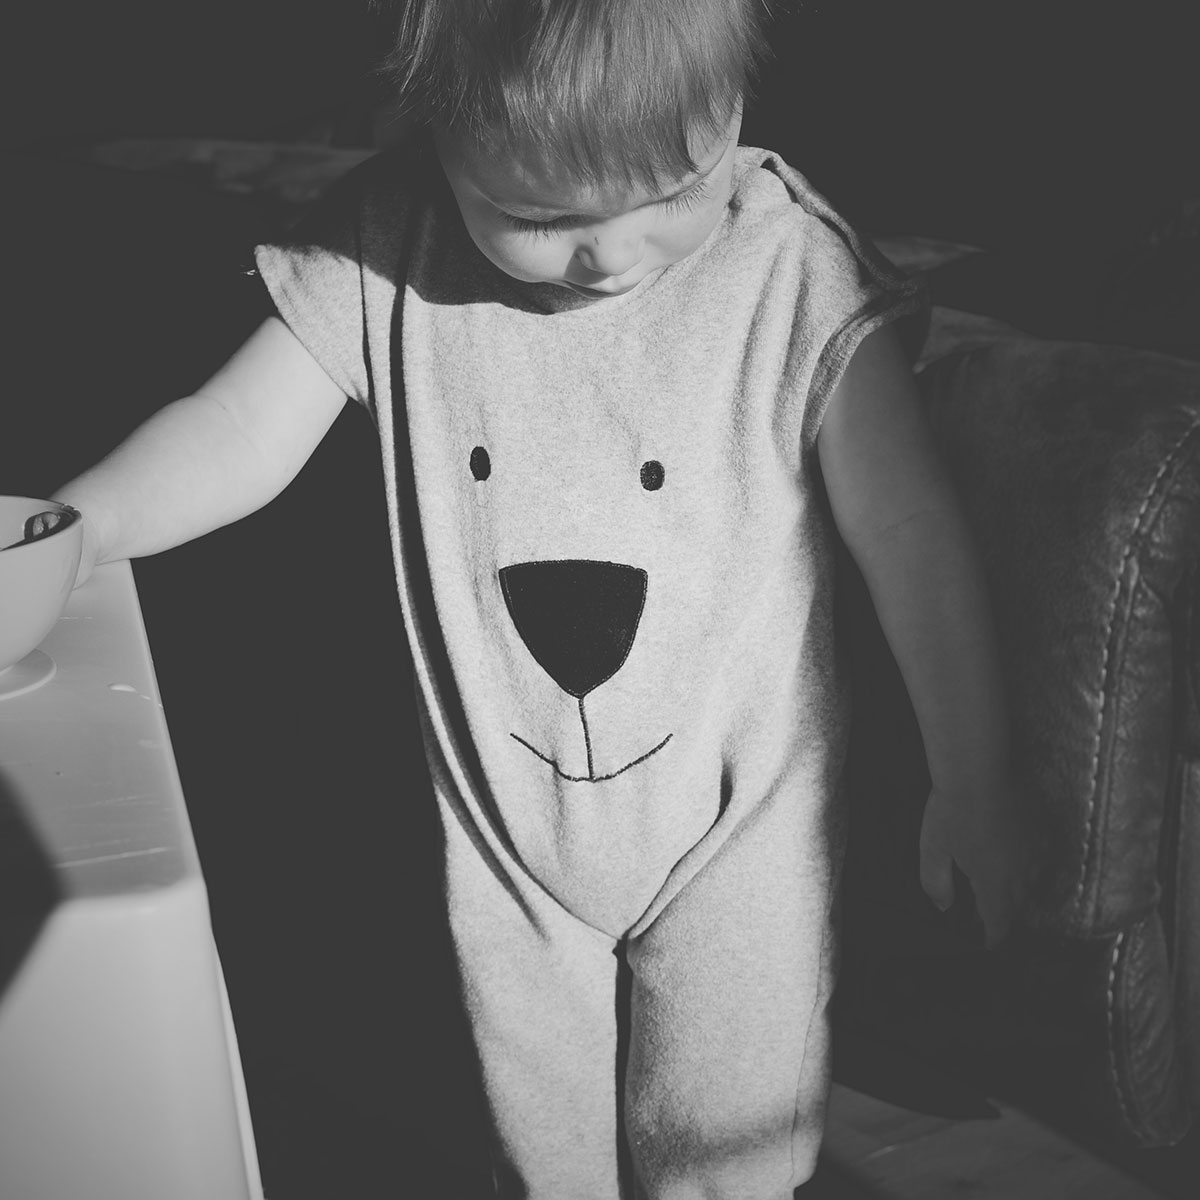 Fashion Friday; Let Me Be Your Teddy Bear // 039 - Toddler wearing baby bear face grey short-sleeved romper, off the shoulder look for weekend tots style